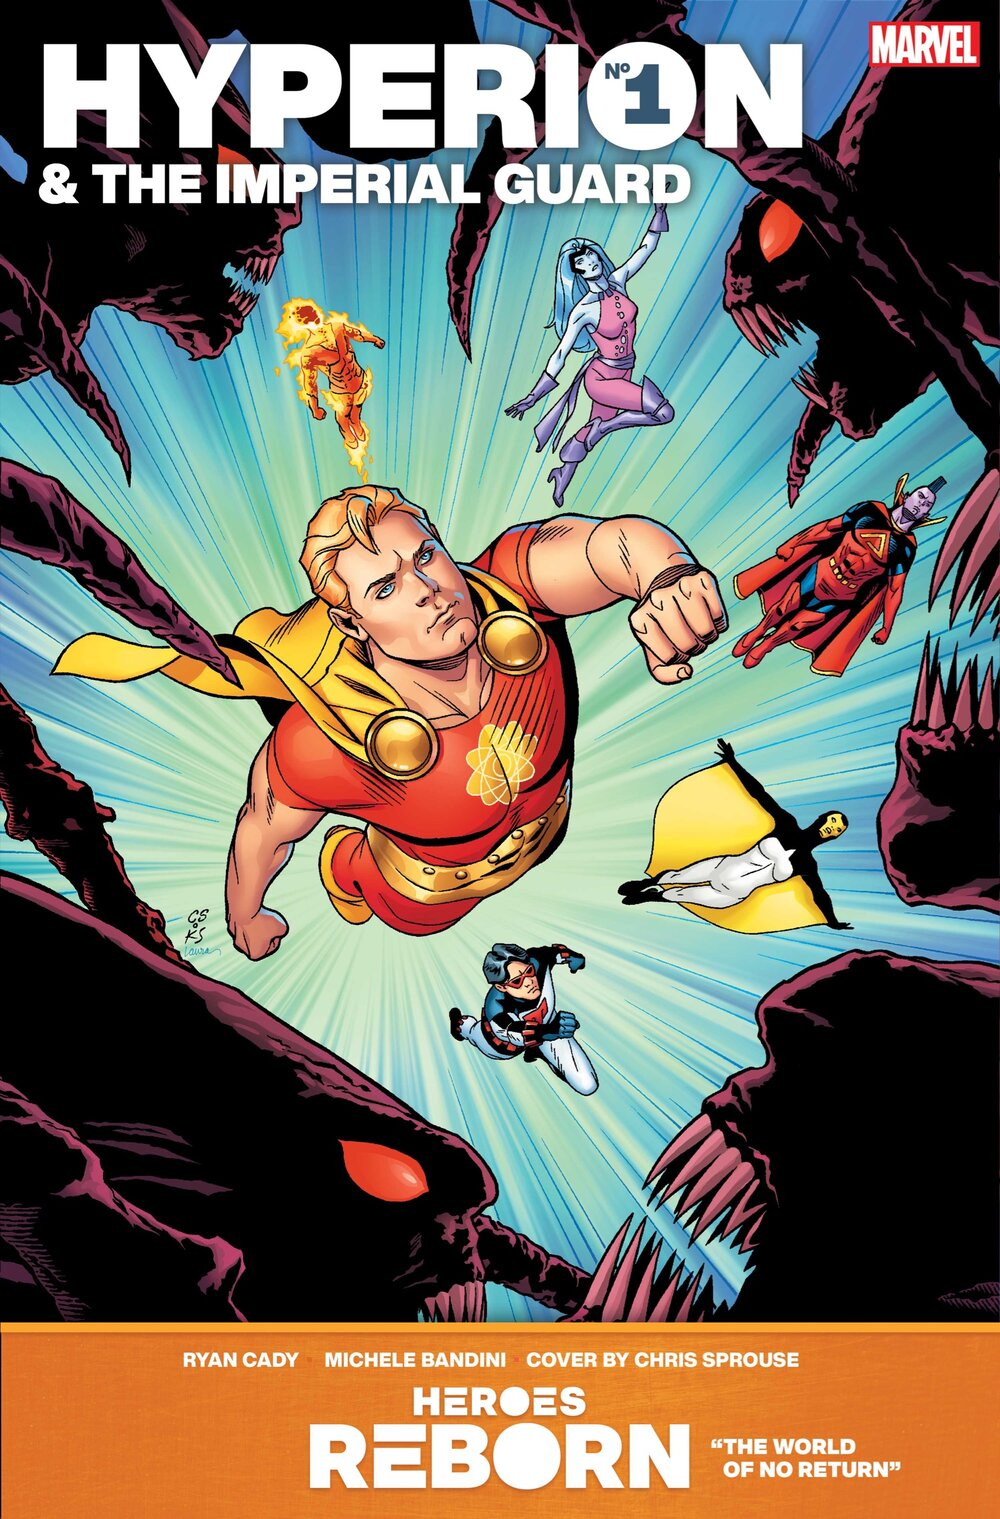 HEROES REBORN: HYPERION & THE IMPERIAL GUARD #1  Written by RYAN CADY  Art by MICHELE BANDINI  Cover by CHRIS SPROUSE  On Sale 5/12/21